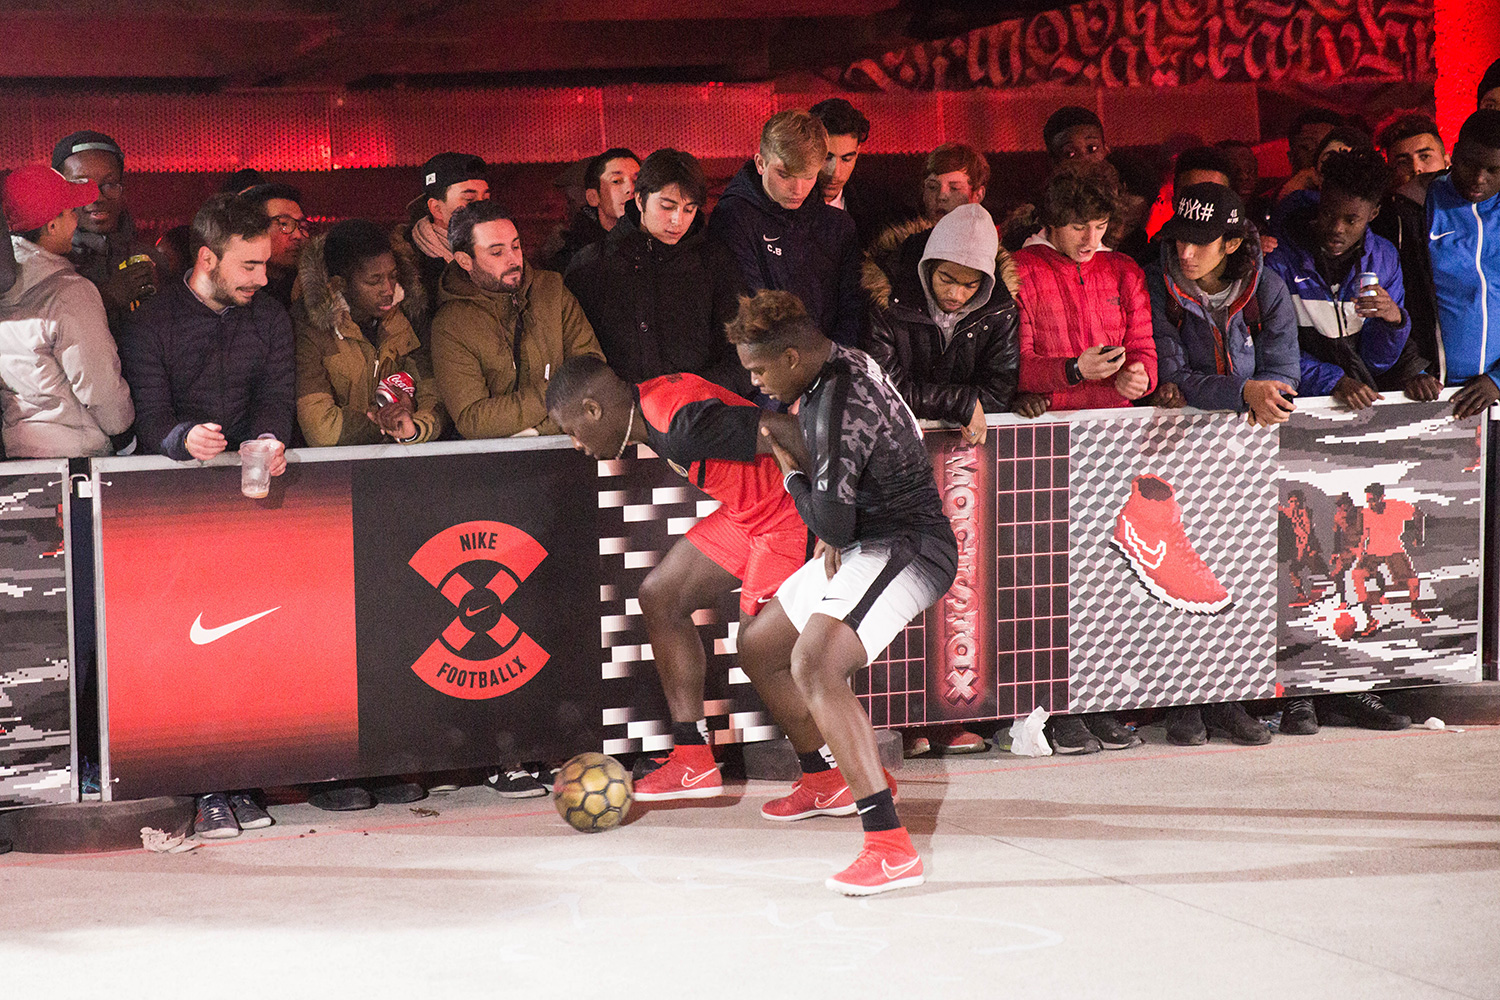 yard-x-nikefootballx-party-4